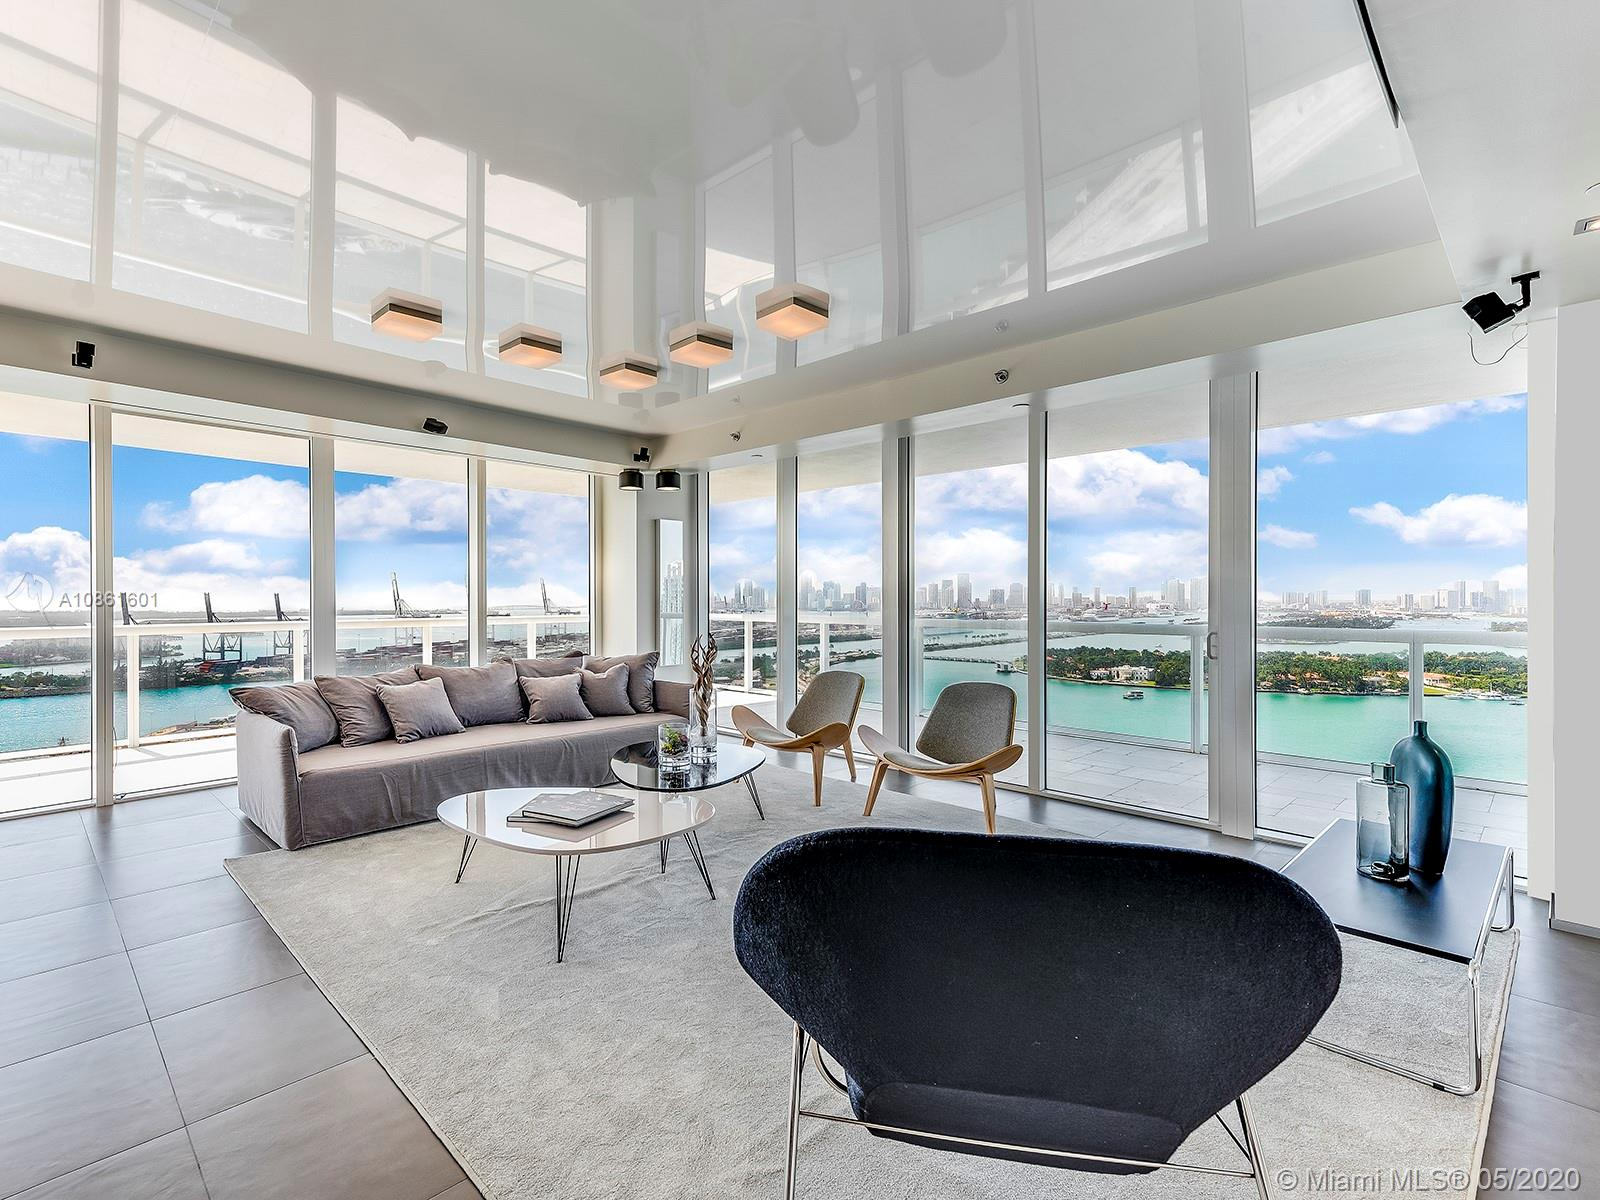 Most desirable line 01 at ICON South Beach. Professionally reconfigured to a unique 3 bedroom 3 bathrooms floor plan, designed to maximize its spectacular views of Miami Downtown, Biscayne Bay and the Atlantic Ocean. Fine finishes throughout that you must see to believe. Priceless Biscayne Bay and Ocean Views from all rooms and from the 700 SQ FT Wrap-Around Terrace.